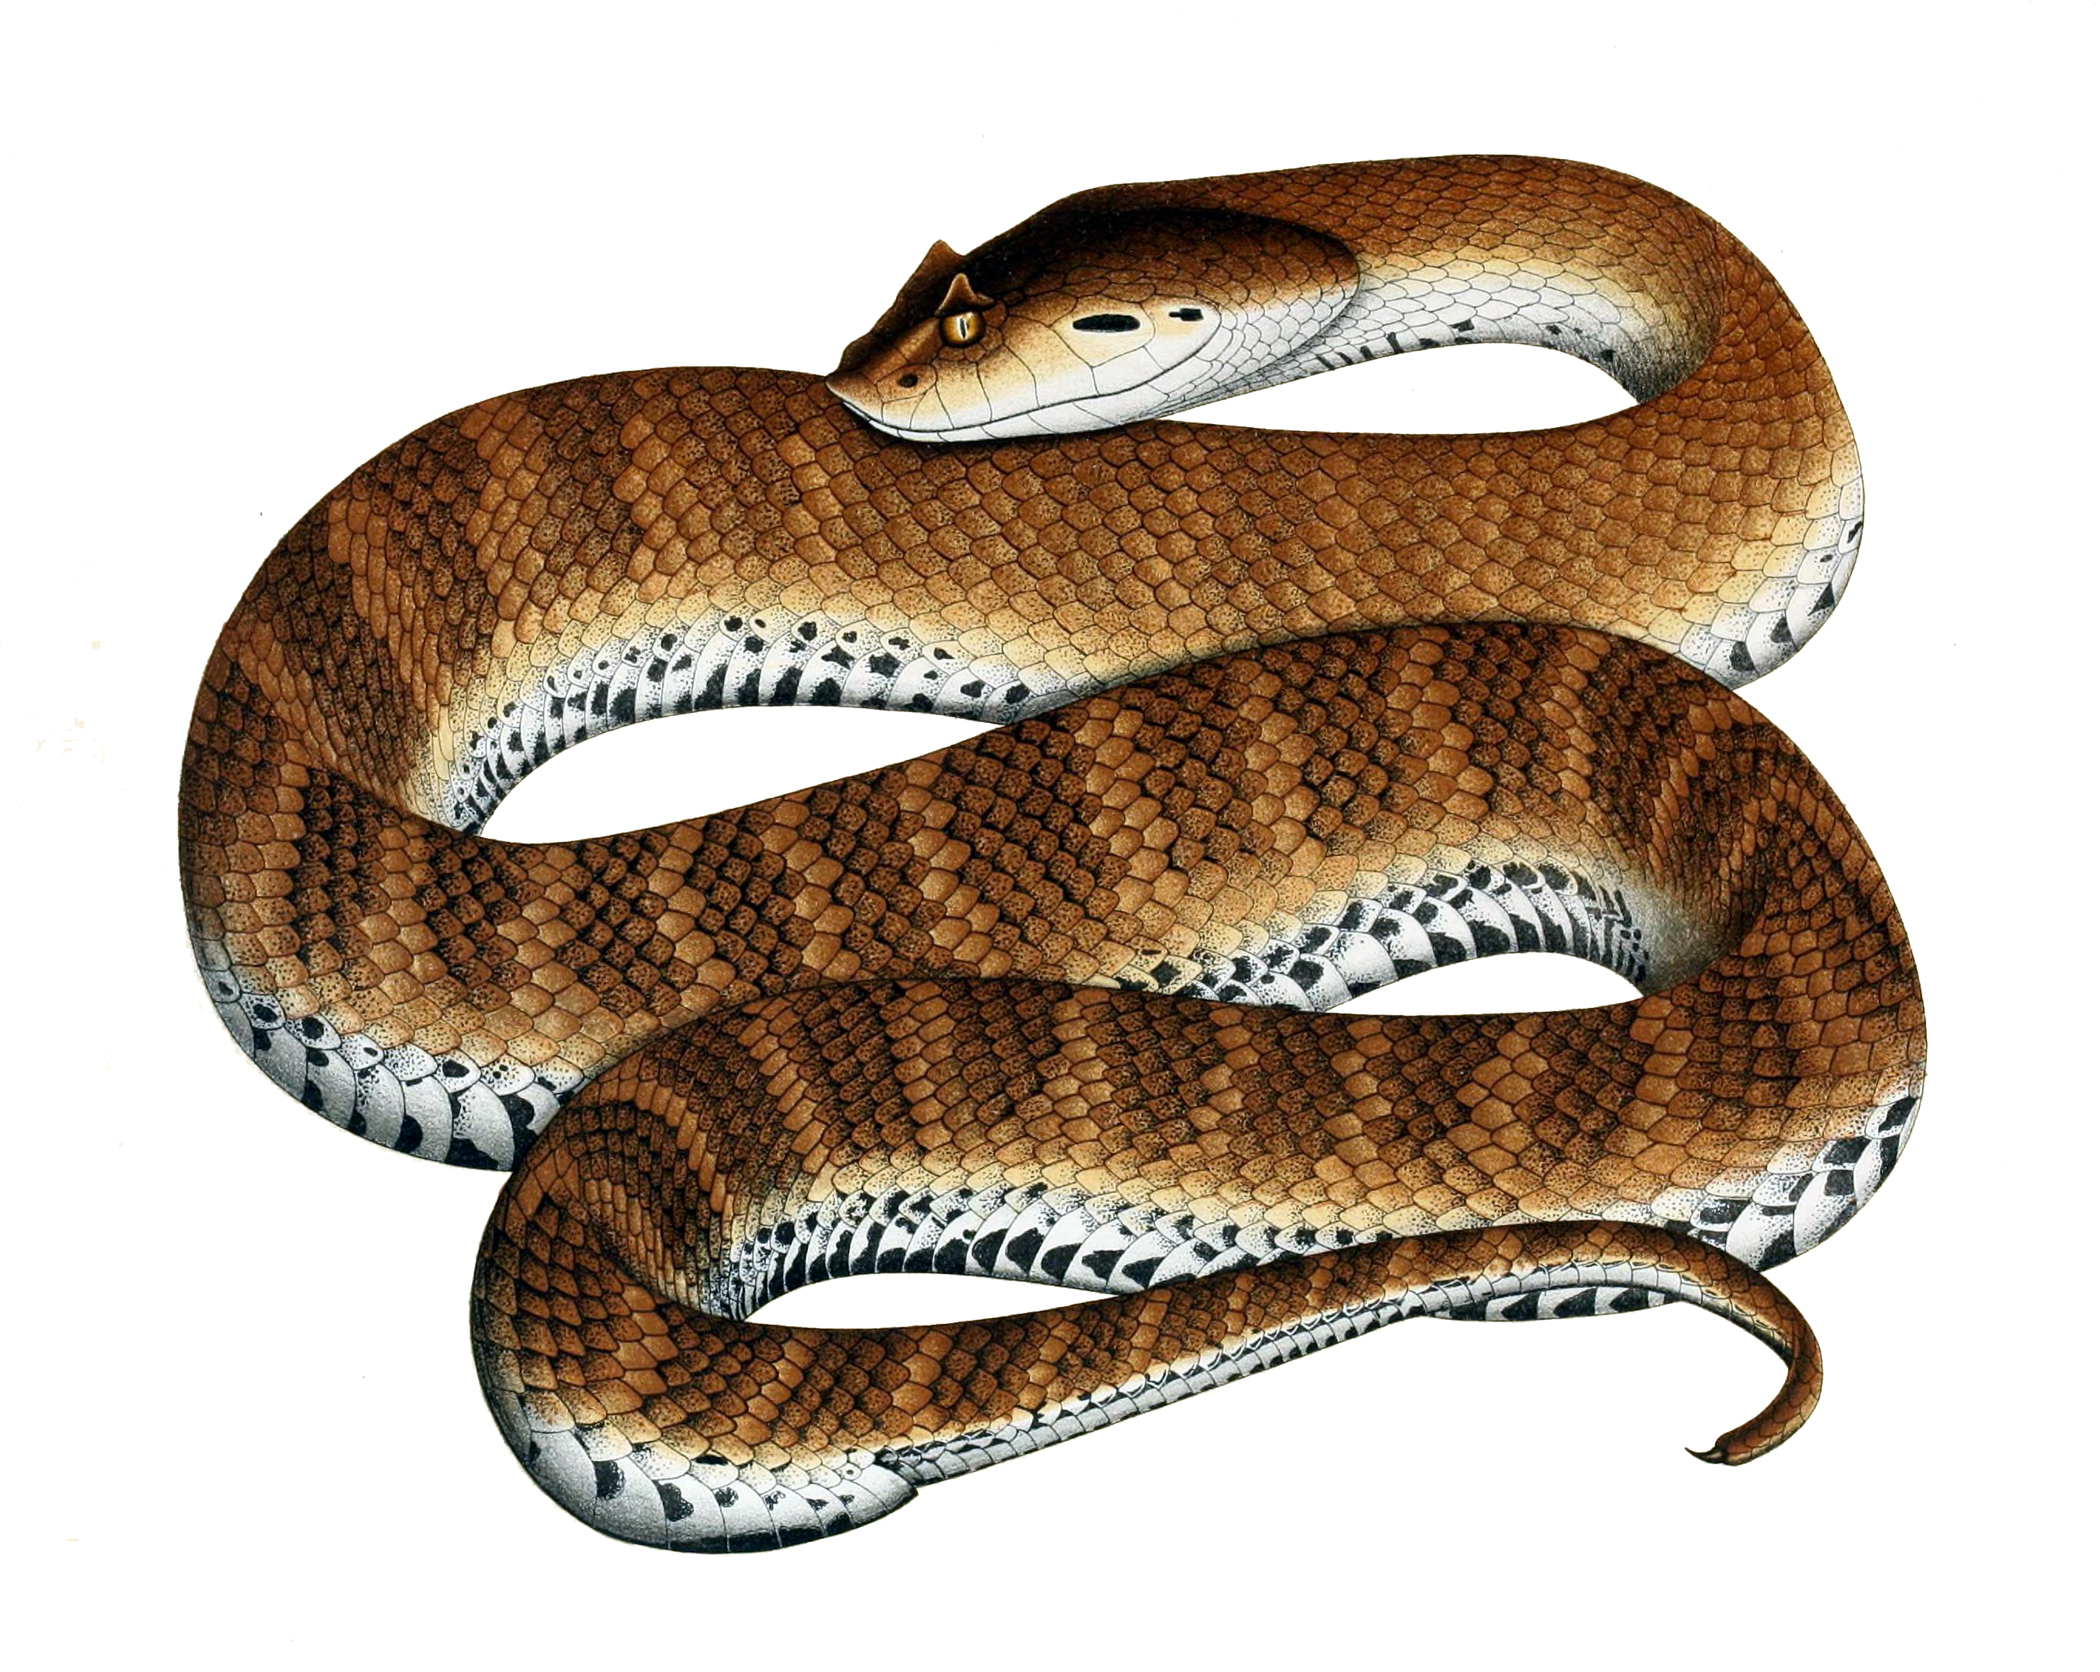 Image of Common Death Adder